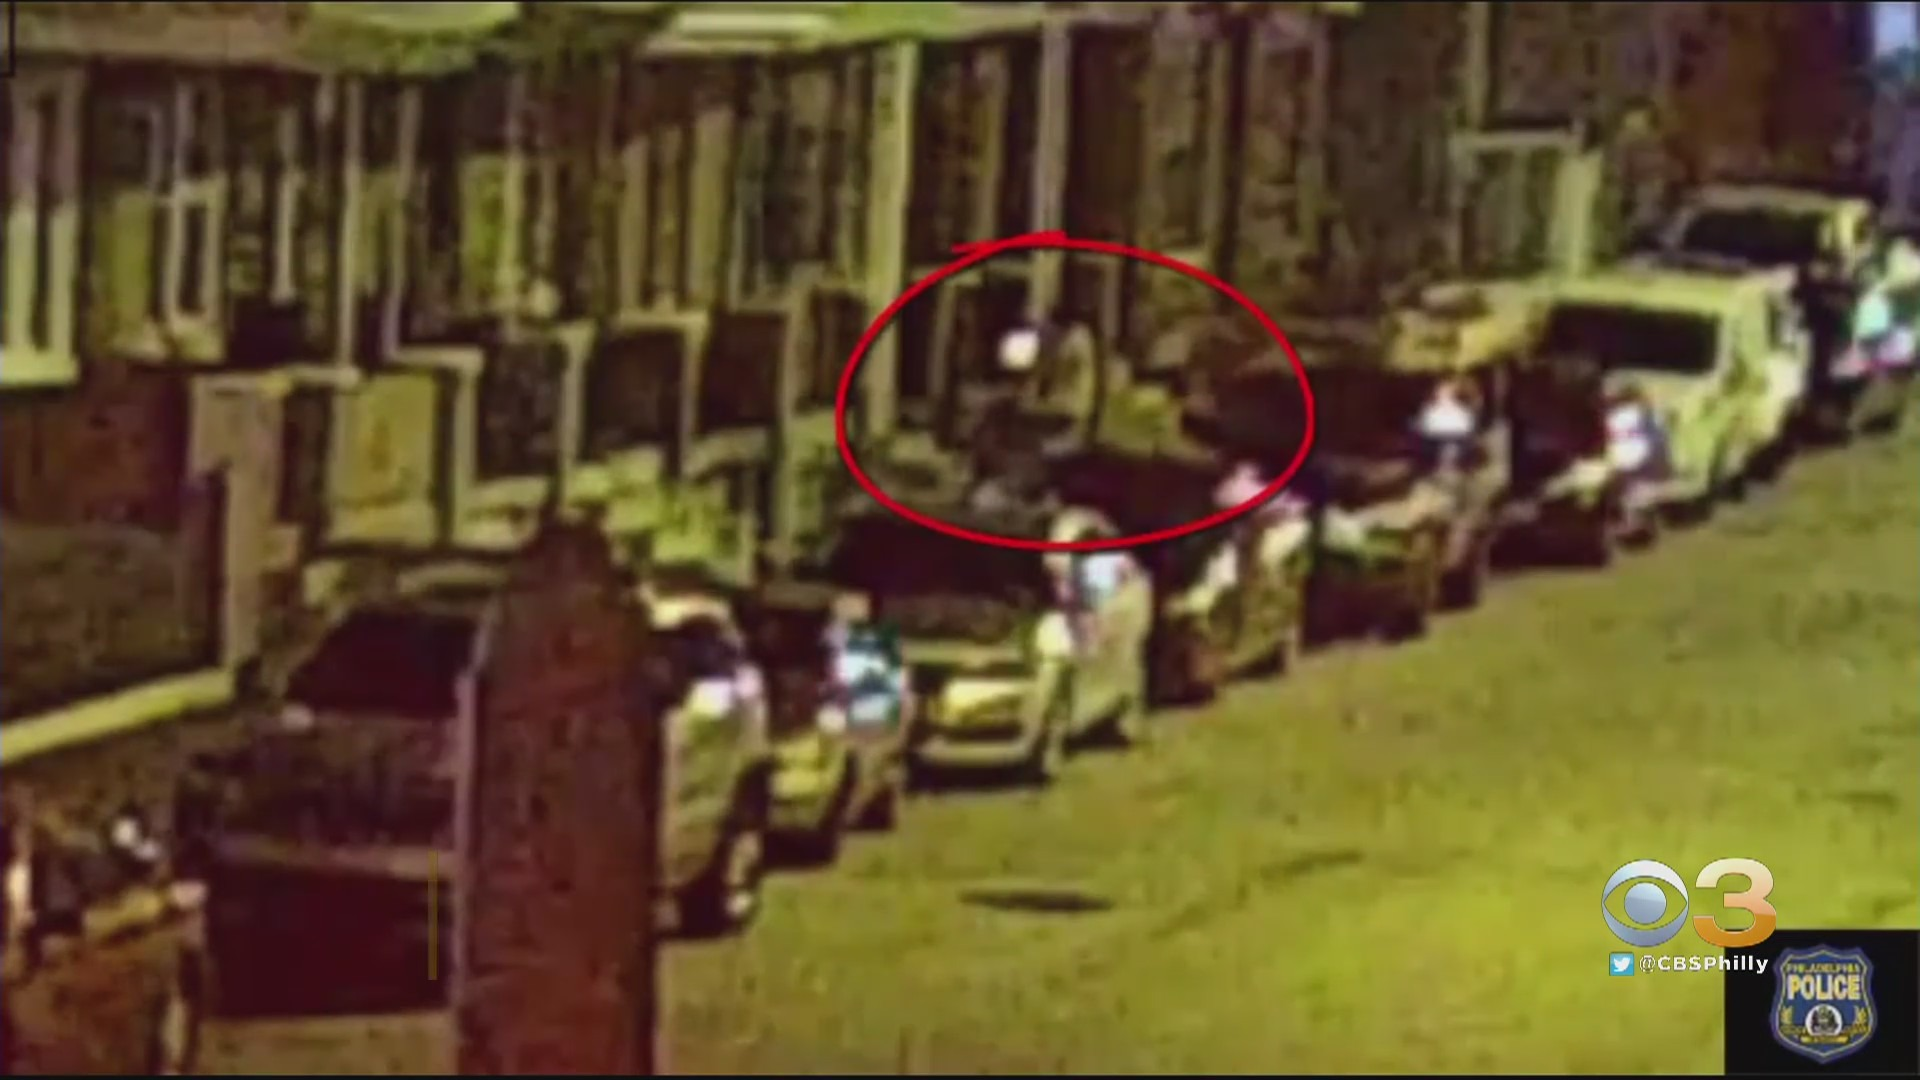 Philadelphia Police Release Video Of Person Setting Fire To Occupied Home In Nicetown-Tioga